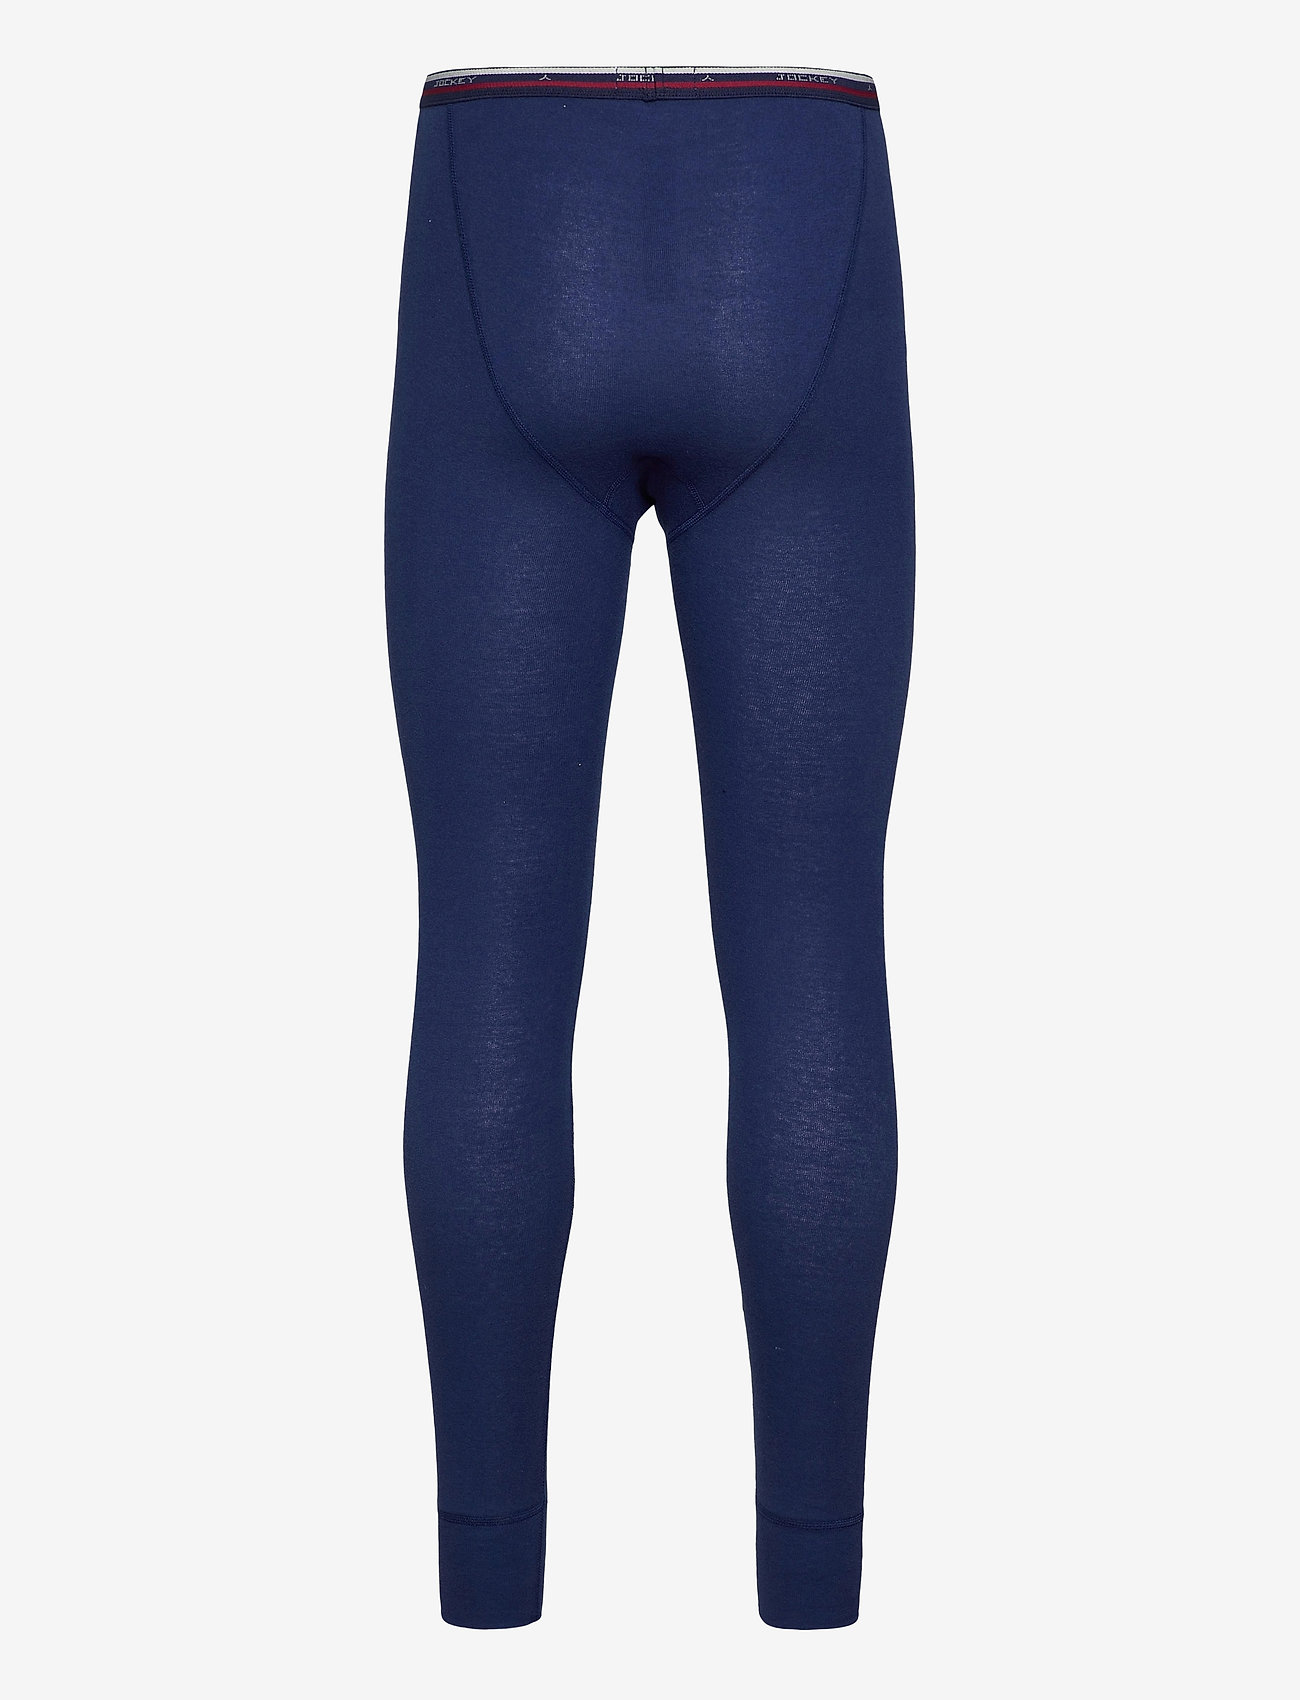 Jockey - Long spurt - base layer bottoms - navy - 1